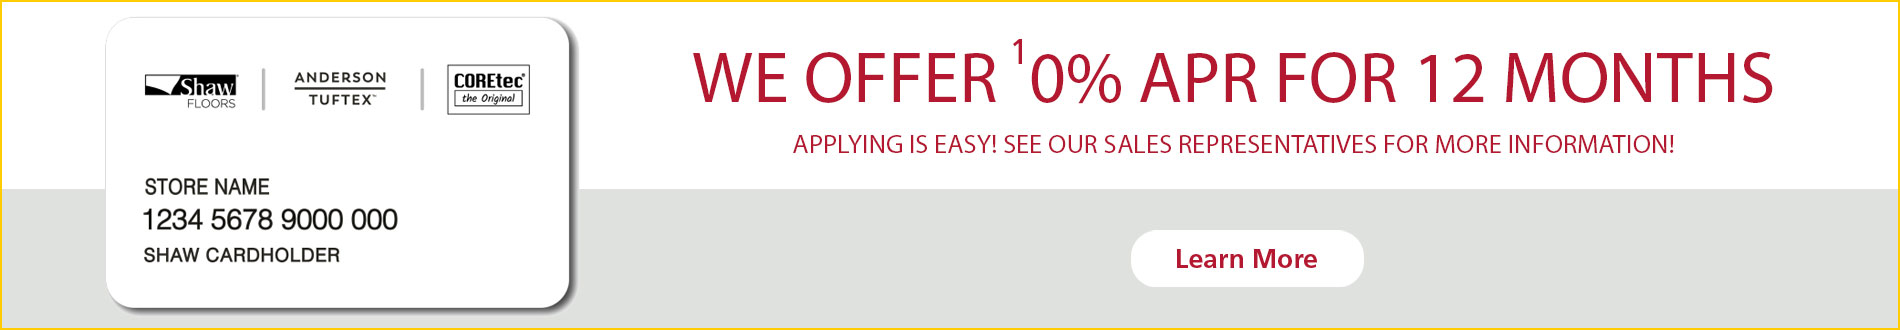 0% APR for 12 months - Learn More